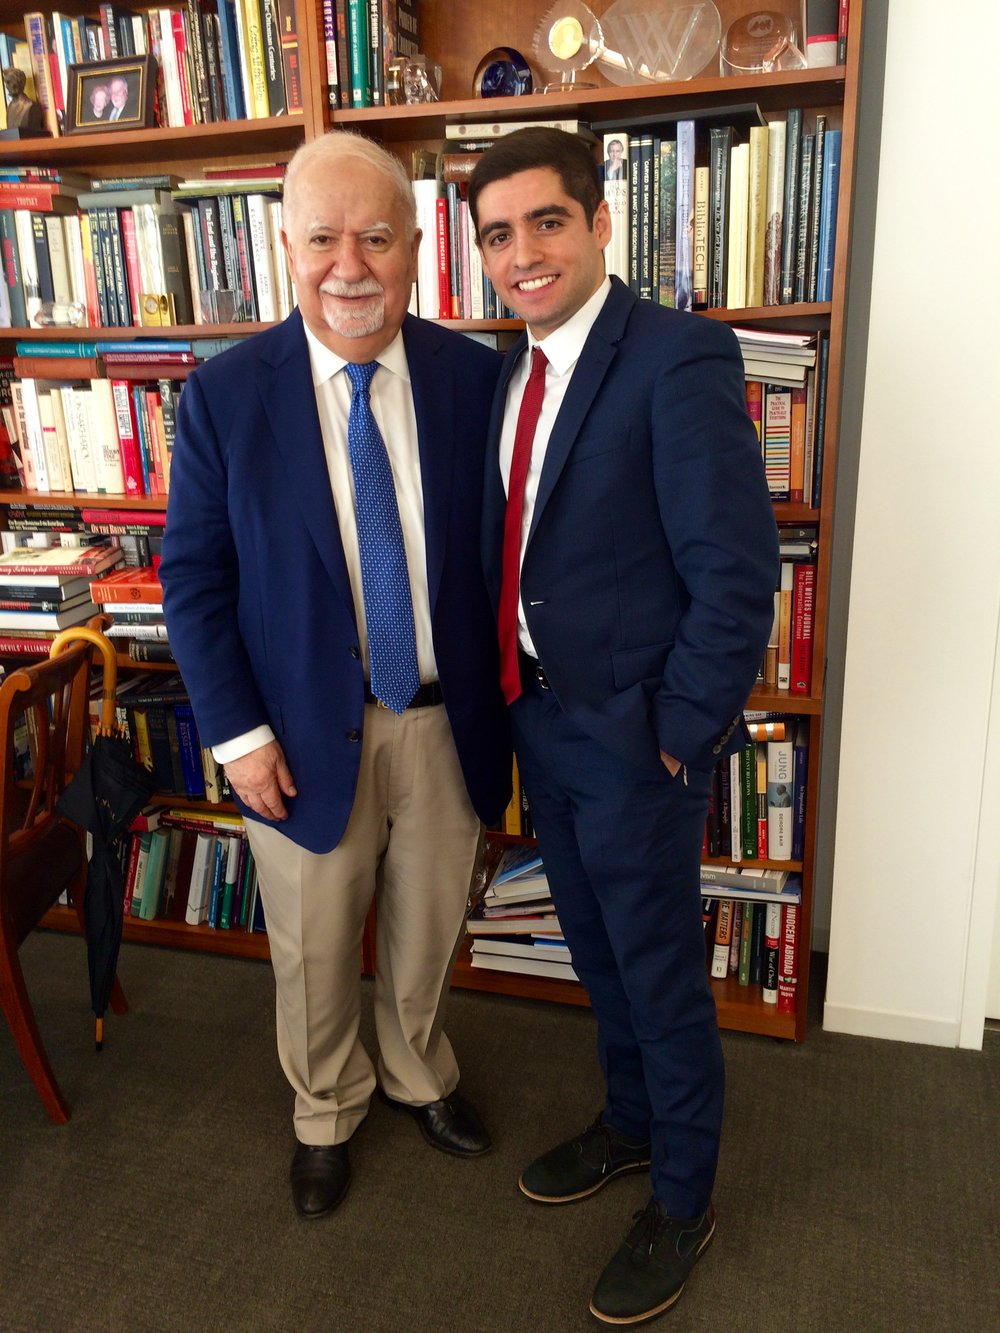 Dr. Vartan Gregorian, President of the Carnegie Corporation of New York, with Sam Vaghar, Executive Director, MCN.  Dr. Gregorian inspired the inclusion of student leaders on the MCN Global Education Council alongside University Presidents and administrators, citing a need for joint ownership in scaling this global network.